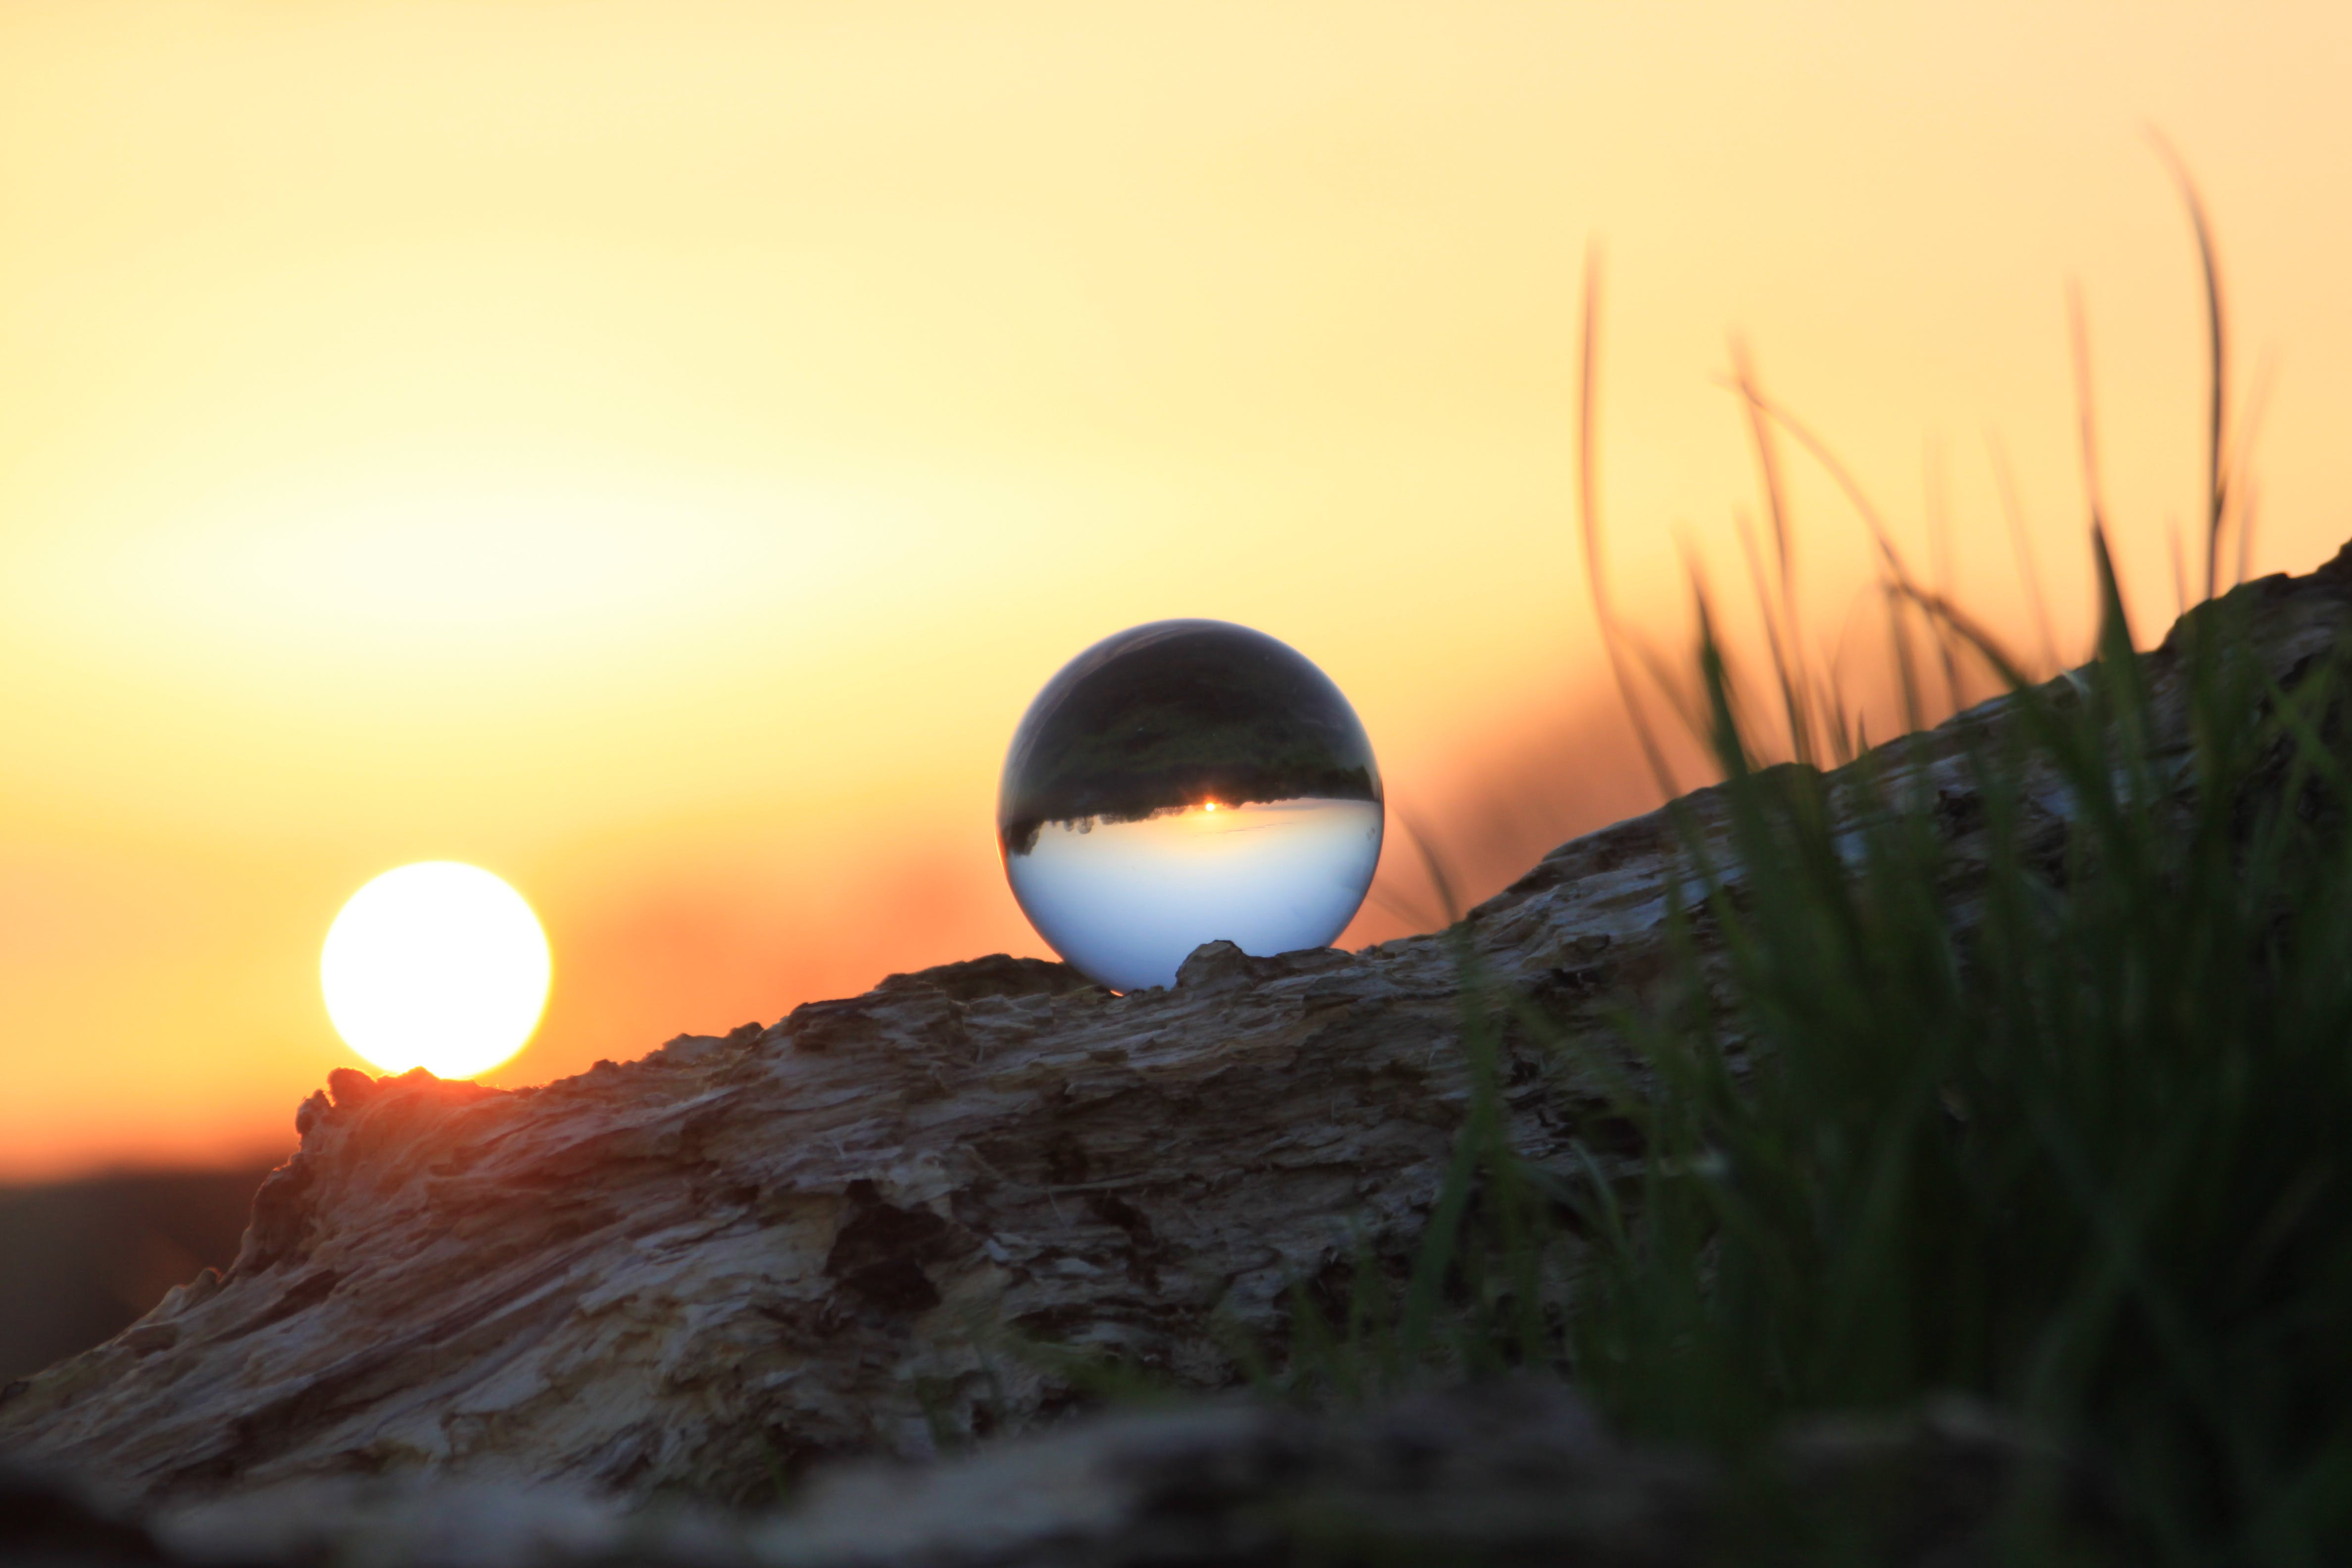 Photography of Glass Ball on Brown Rock Formation during Sunset